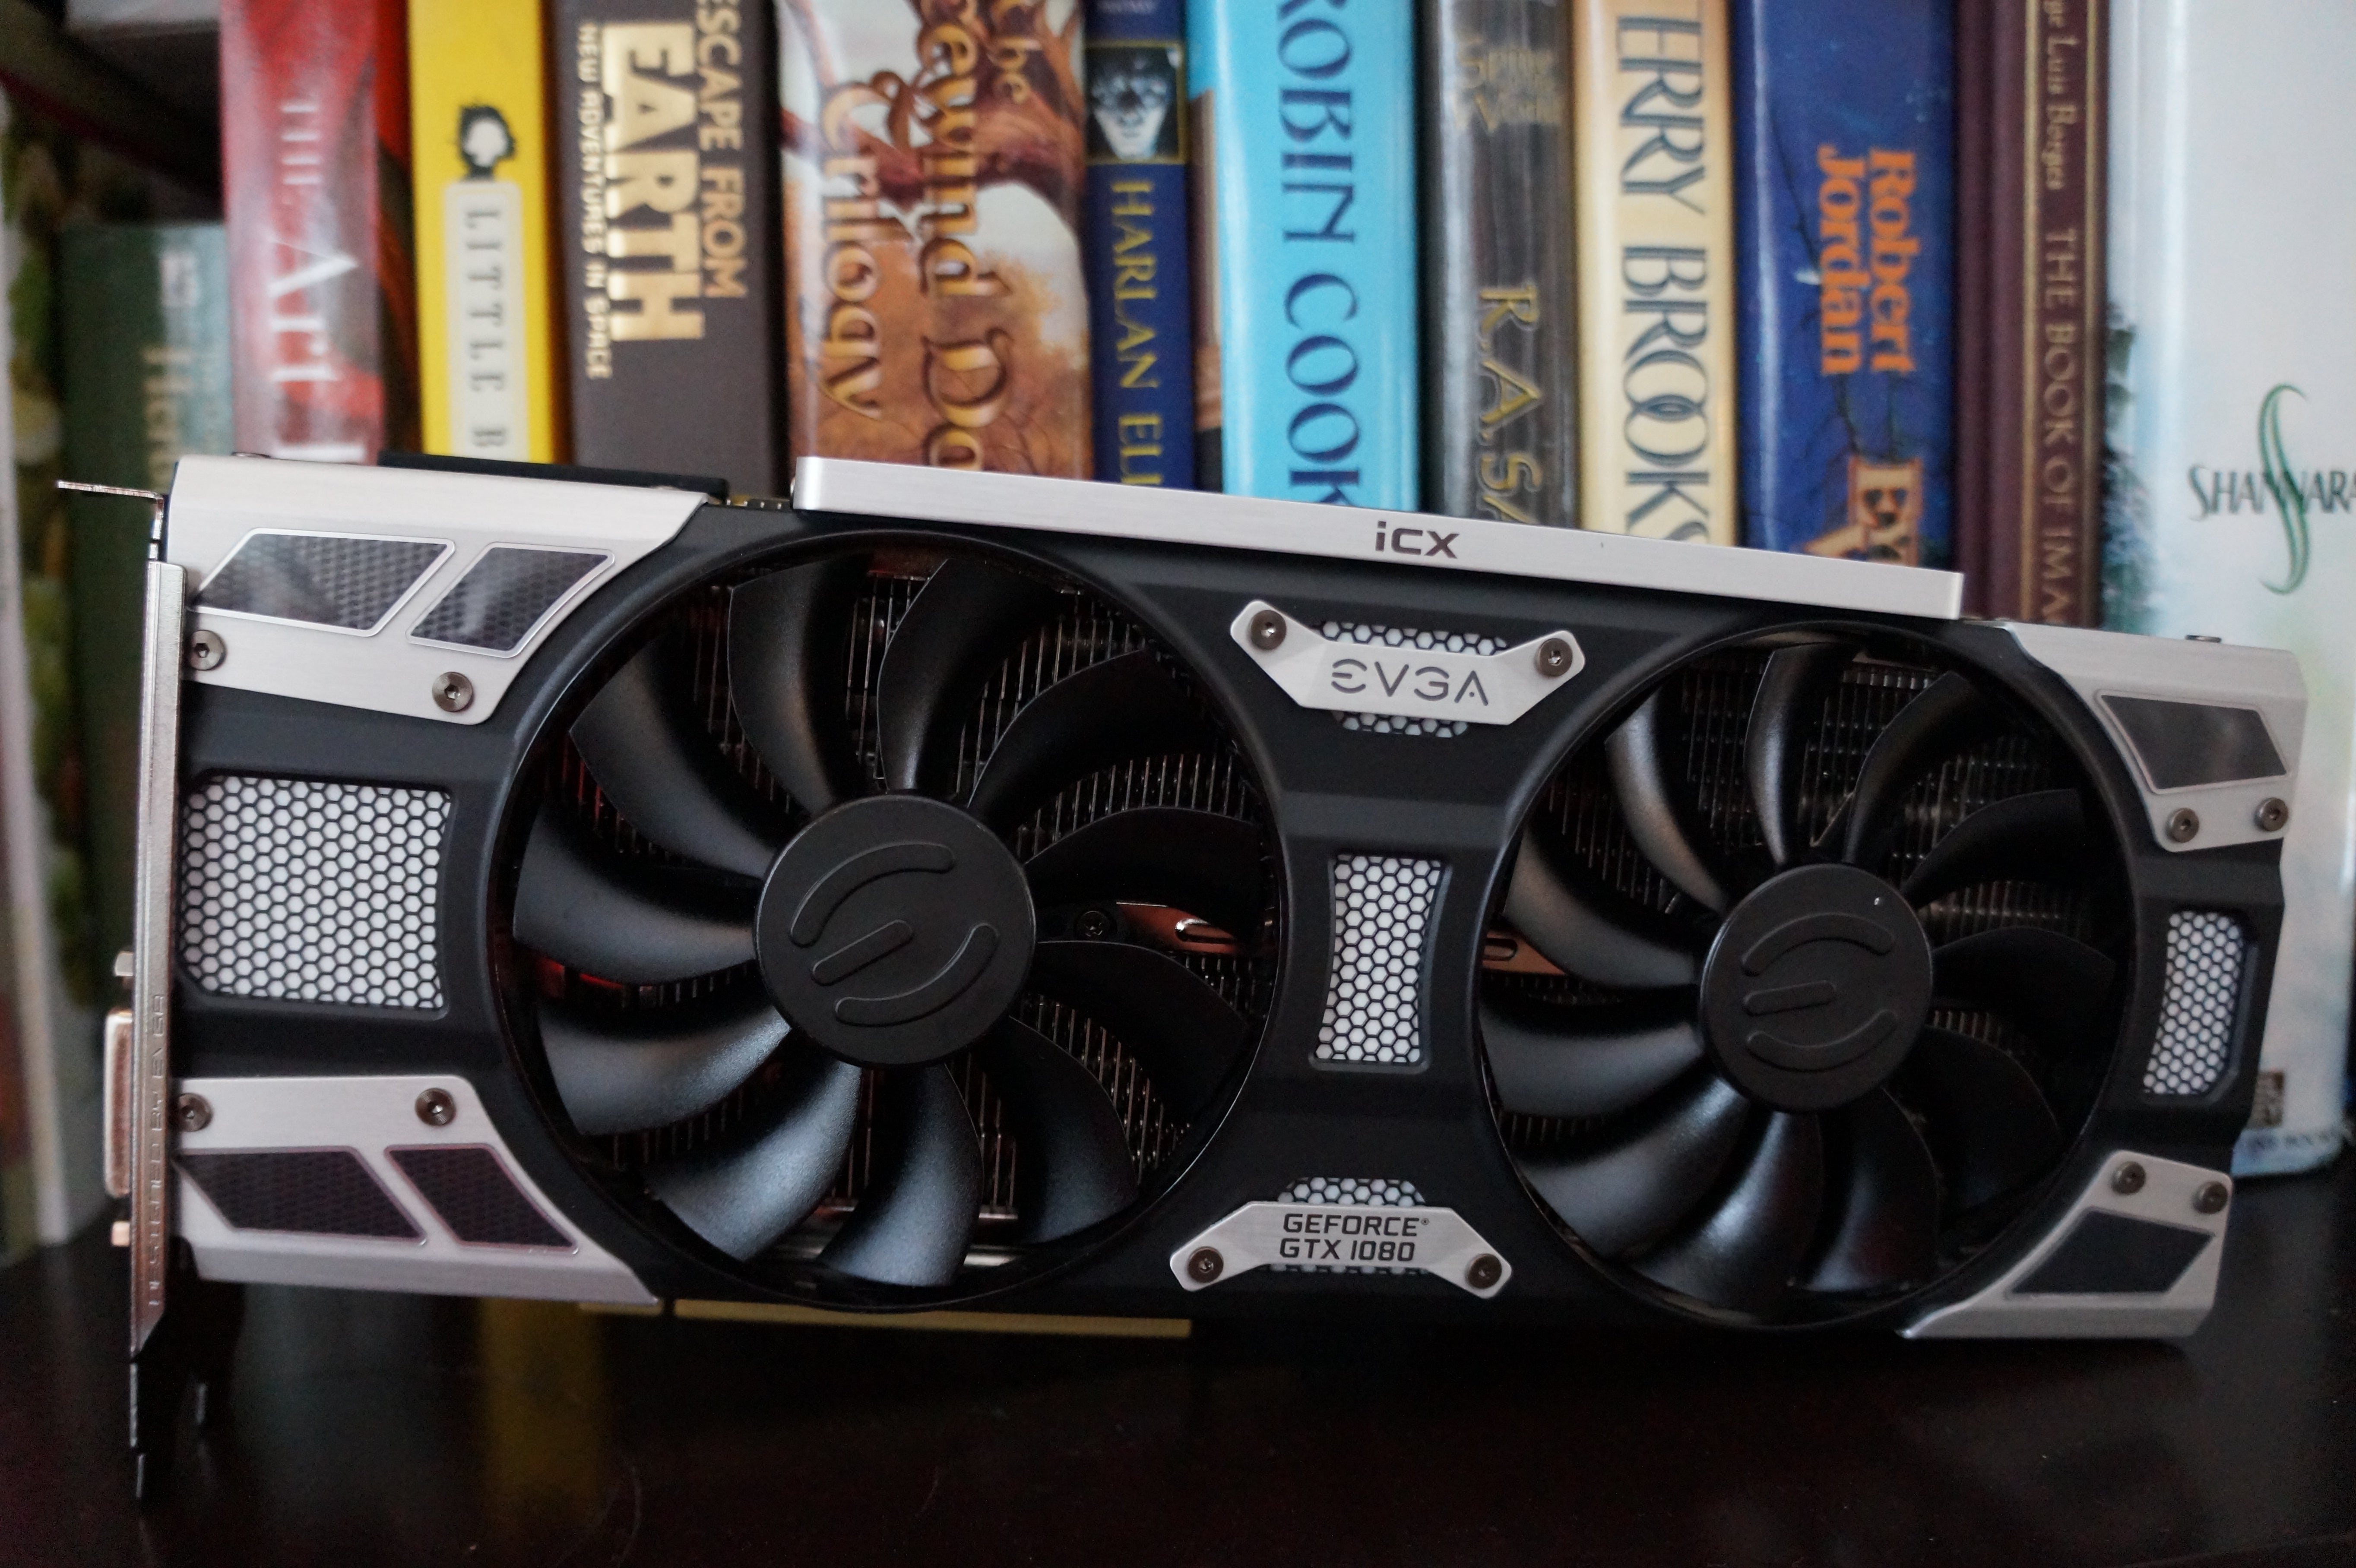 Hands-on: EVGA's sensor-laden iCX technology revolutionizes graphics